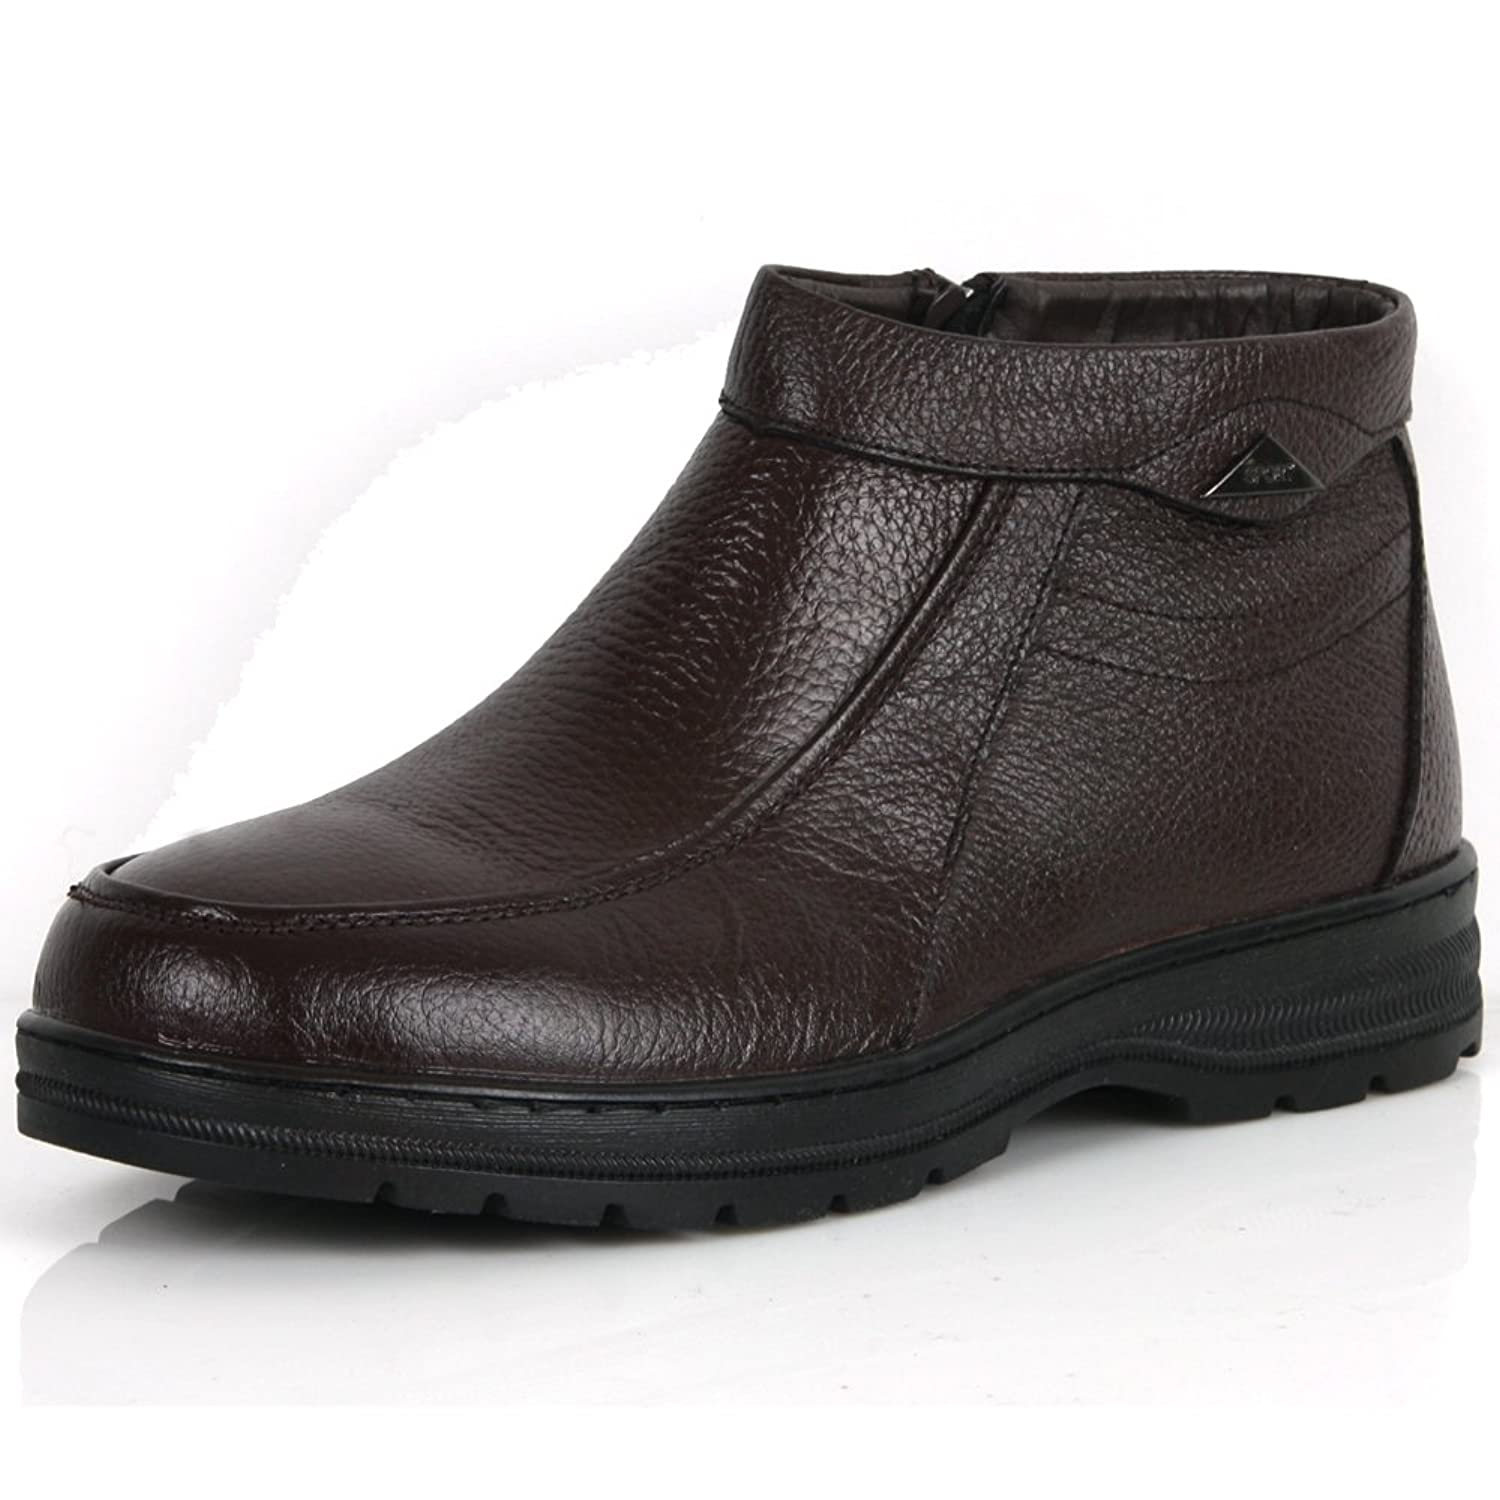 New Mens Casual Dress Leather Snow Warm Winter Slip on Ankle Boots Shoes Brown